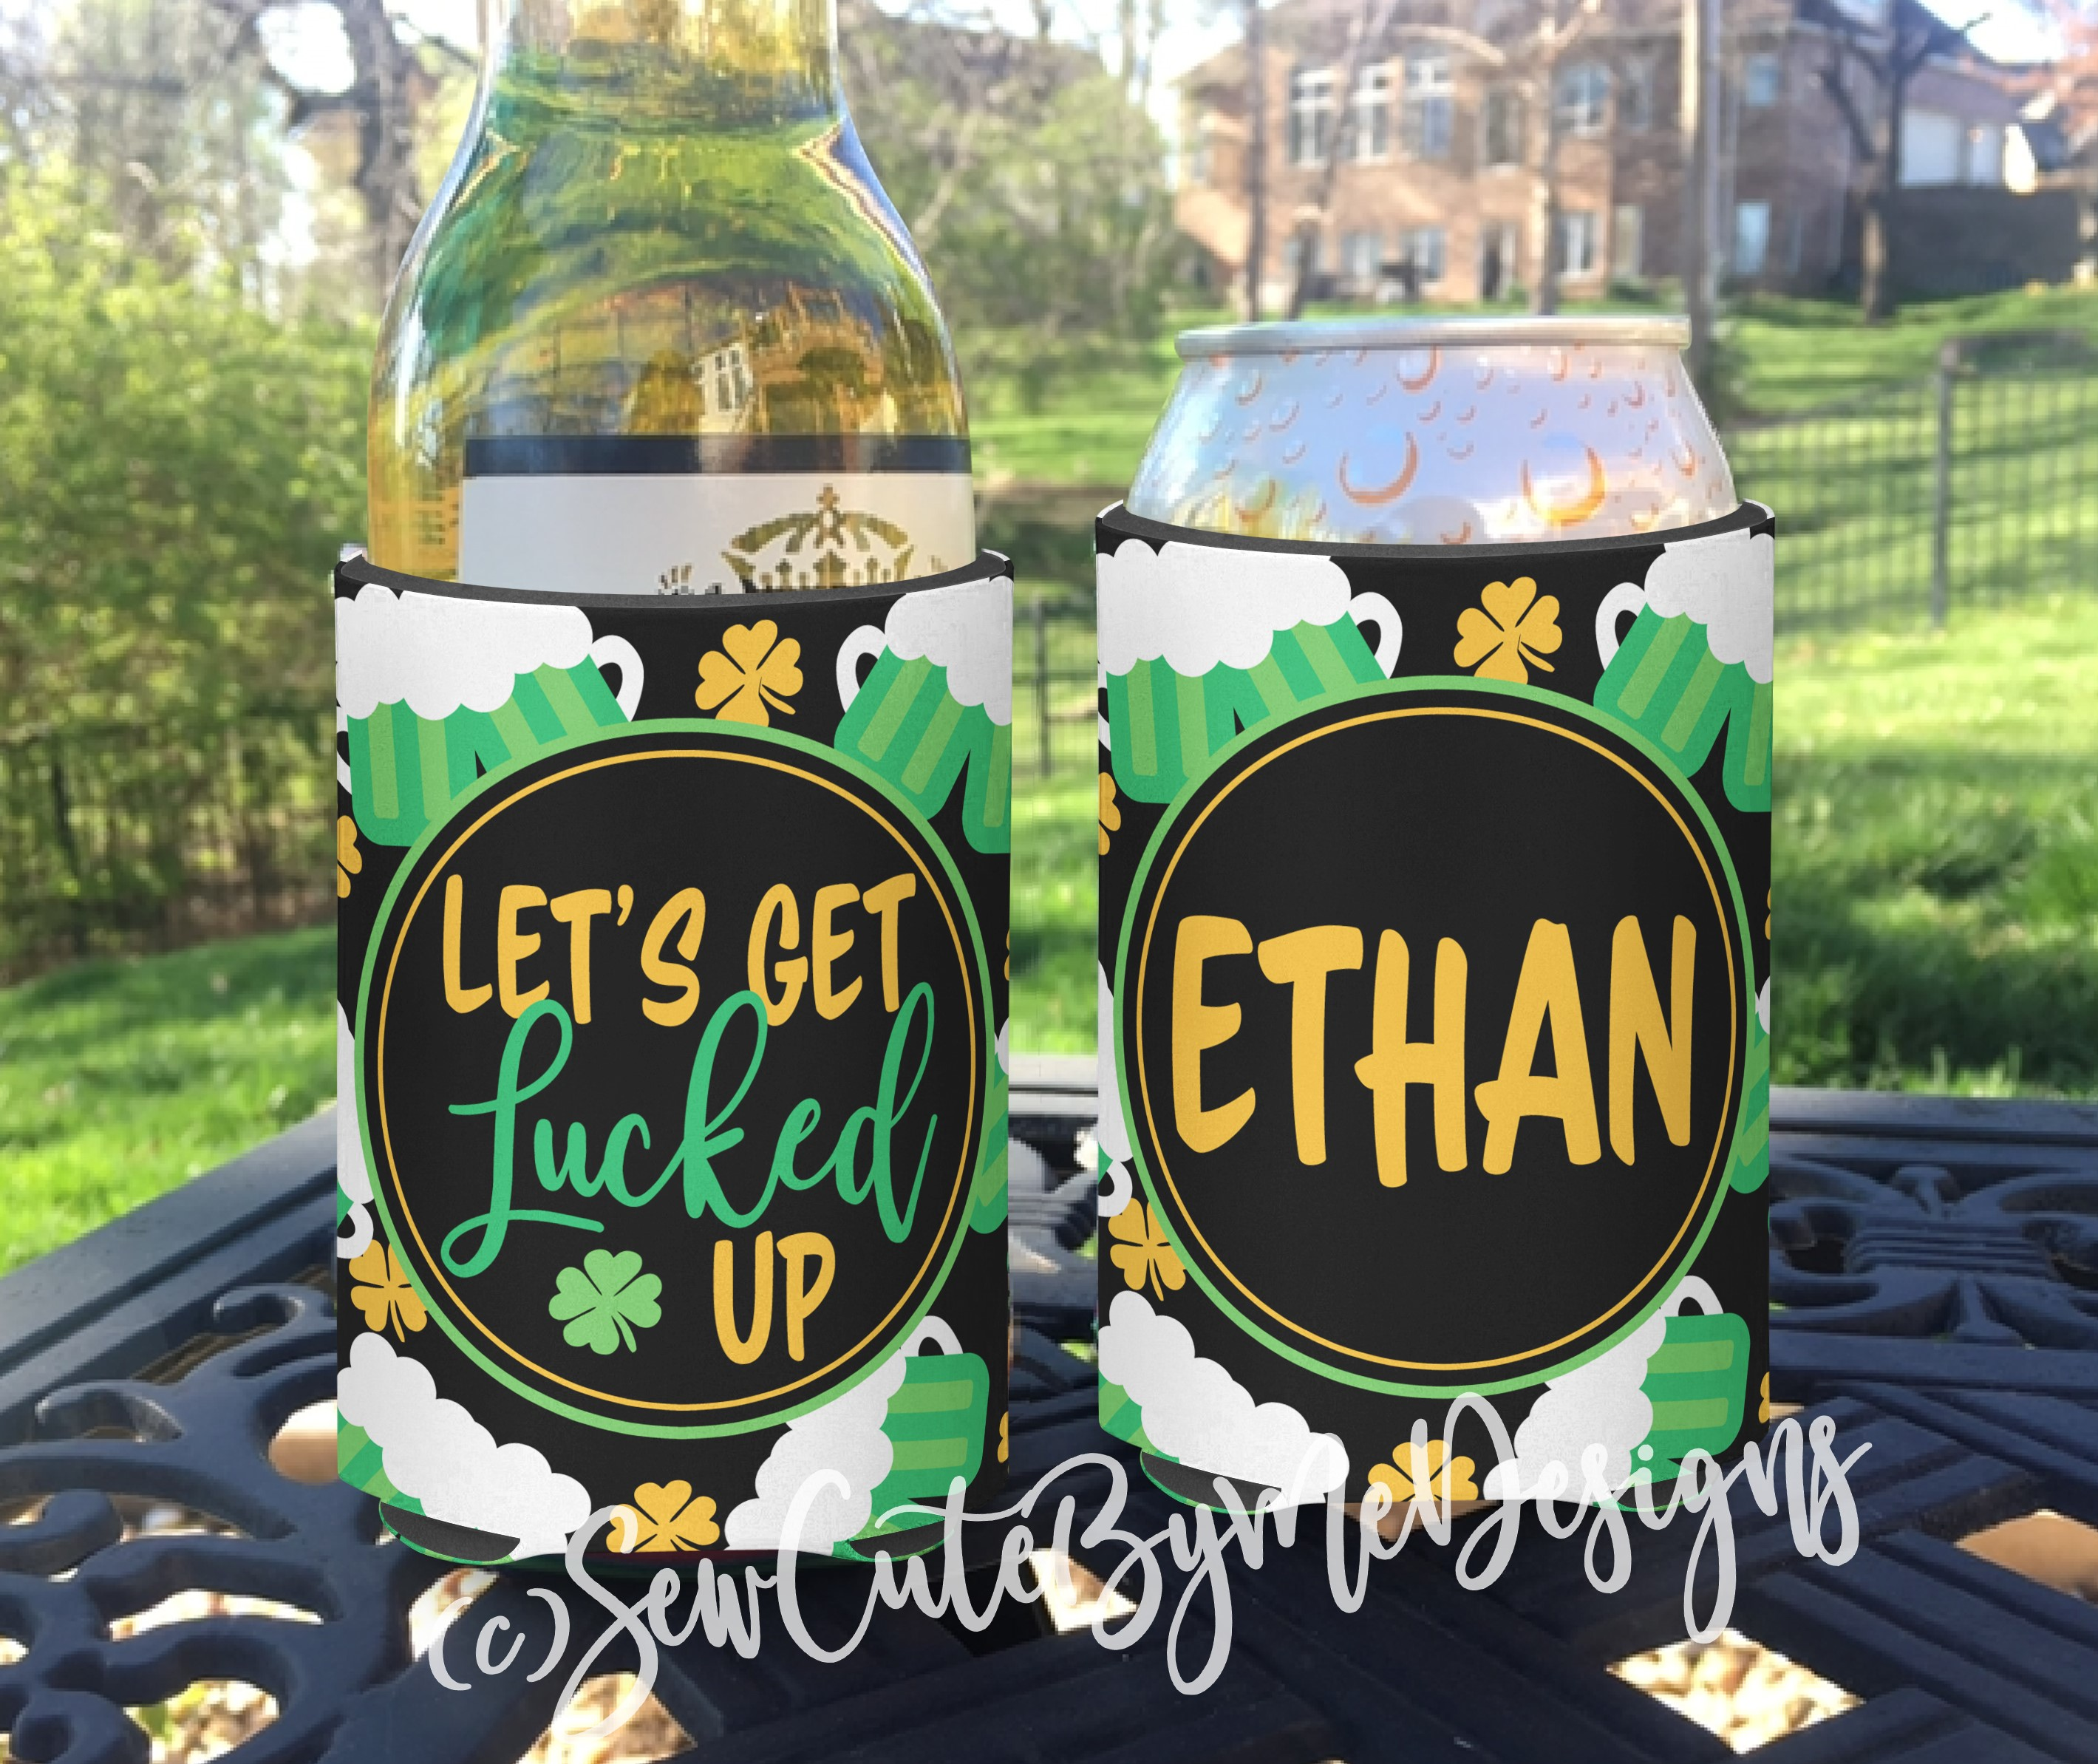 St. Patrick's Day Koozies or coolies - Lucked Up